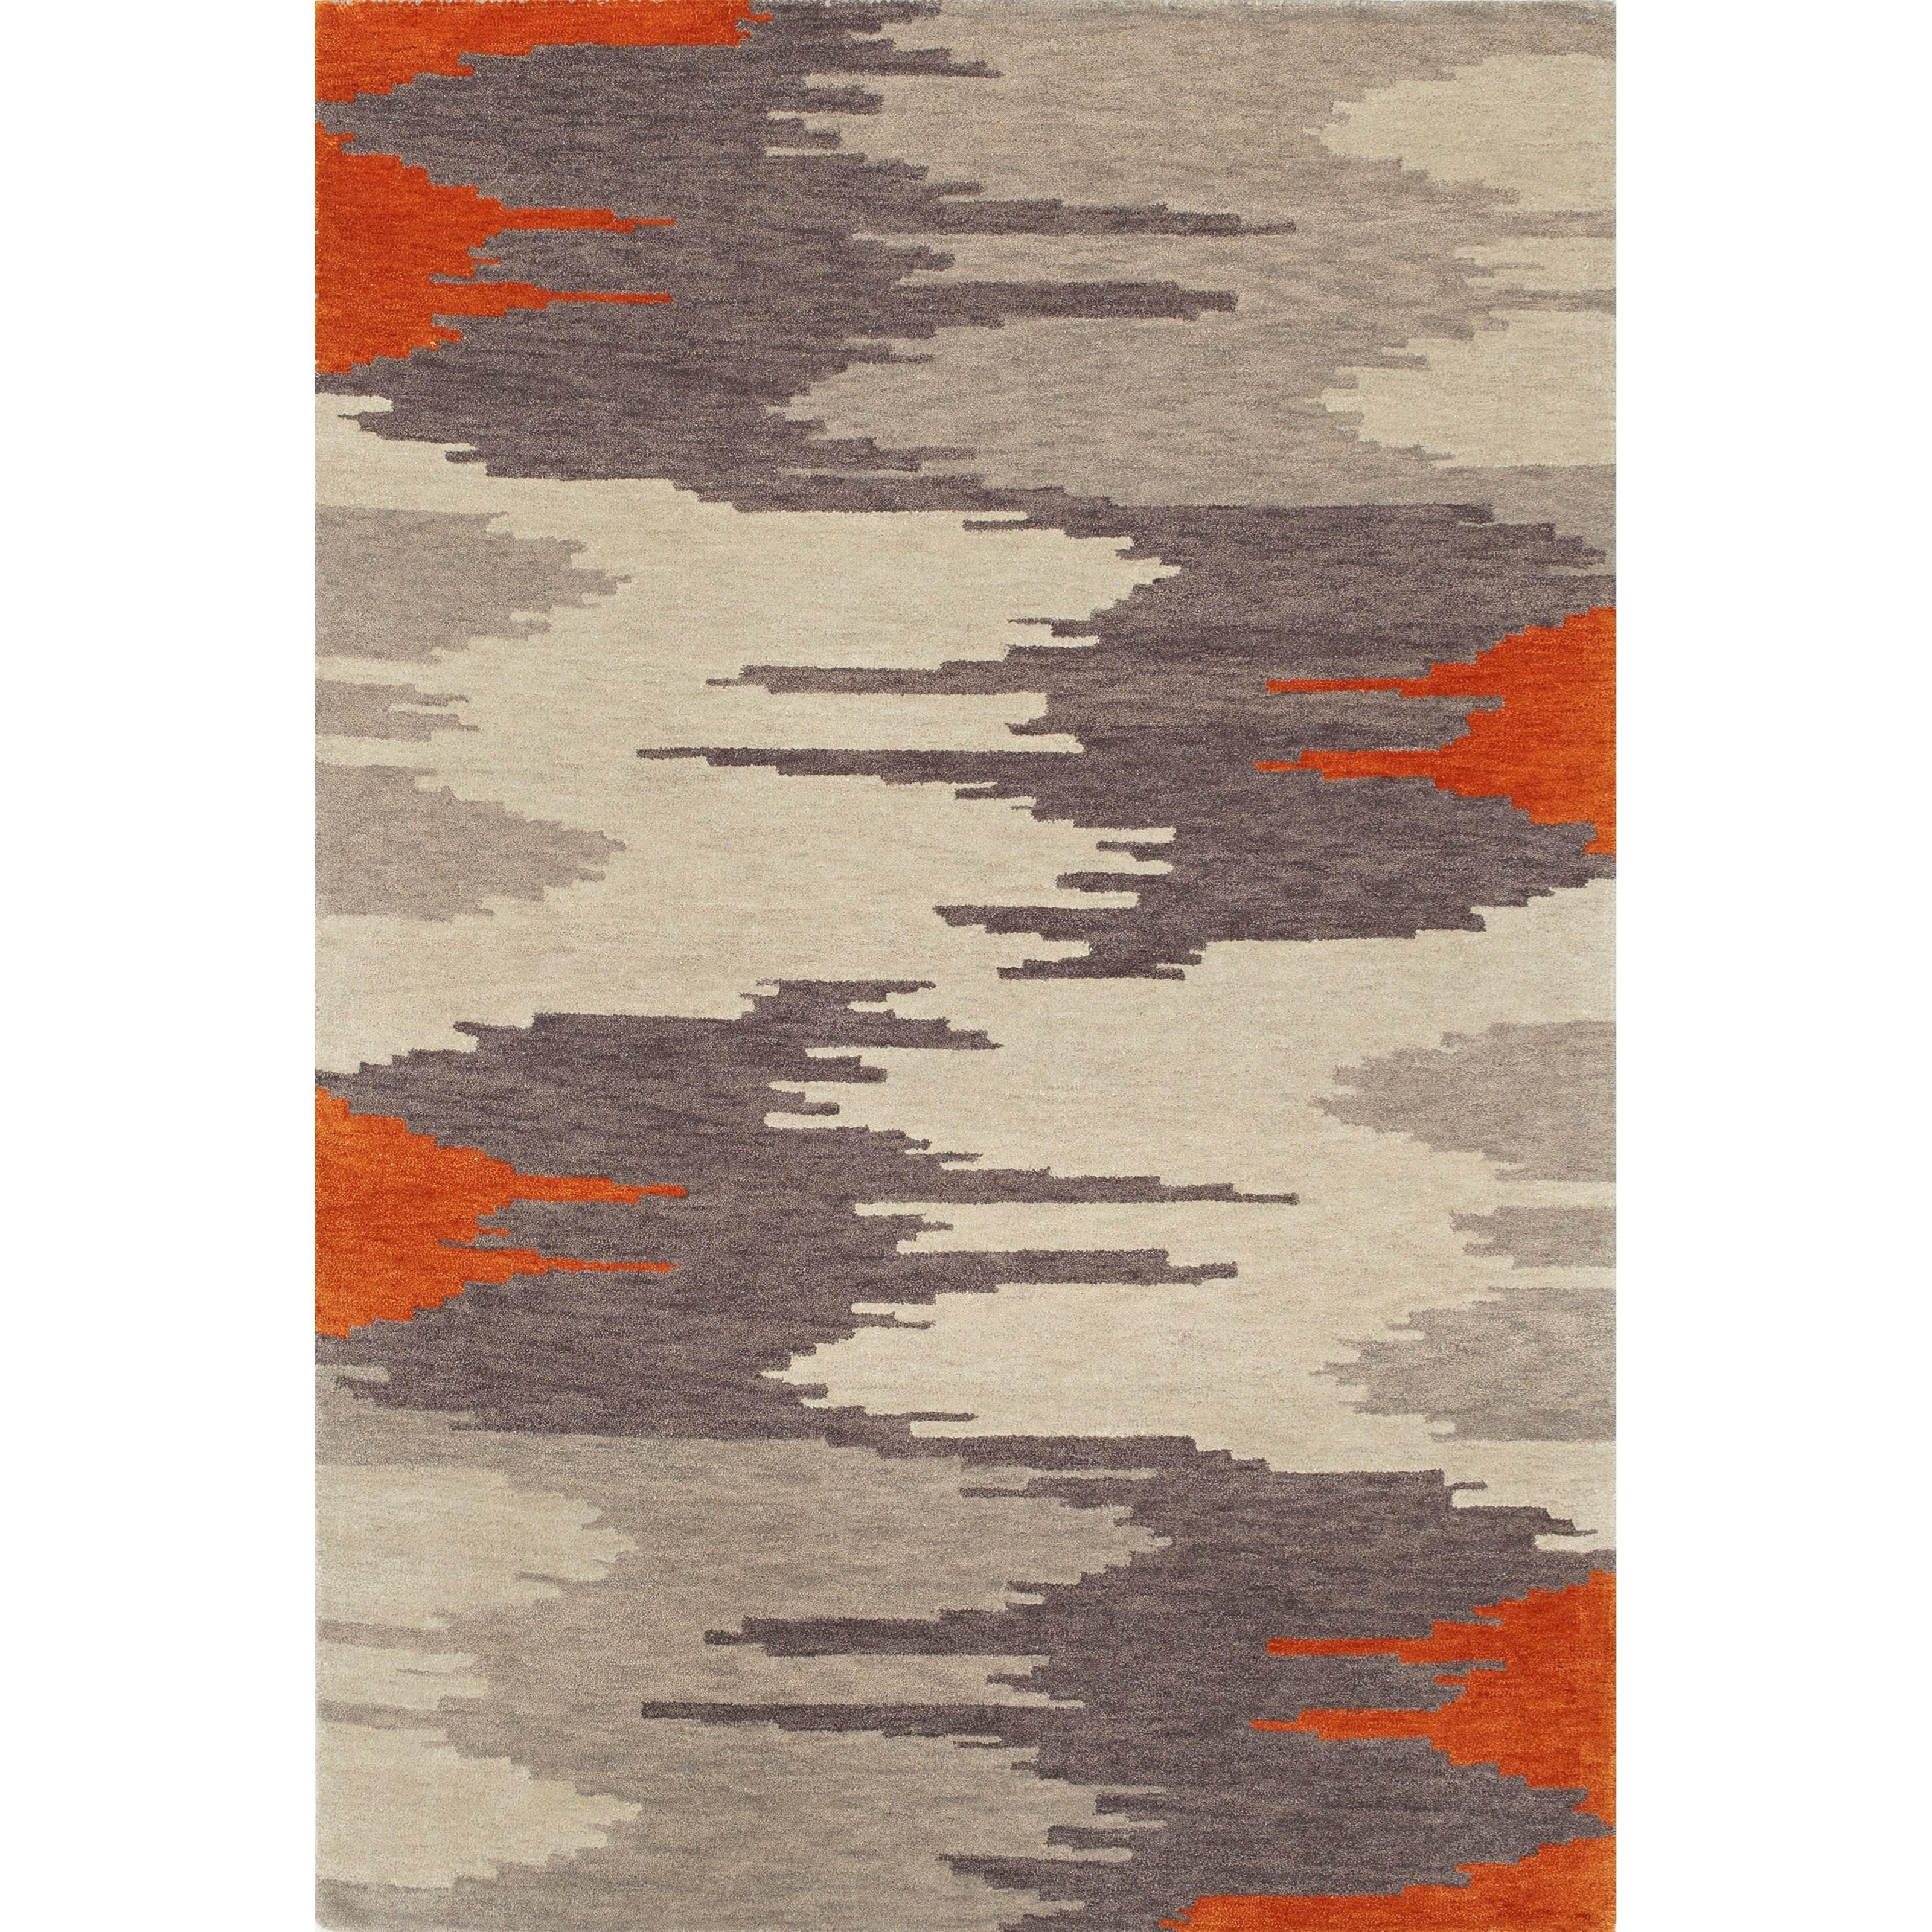 Dalyn Impulse Orange 8'X10' Rug - Item Number: IS6OR8X10